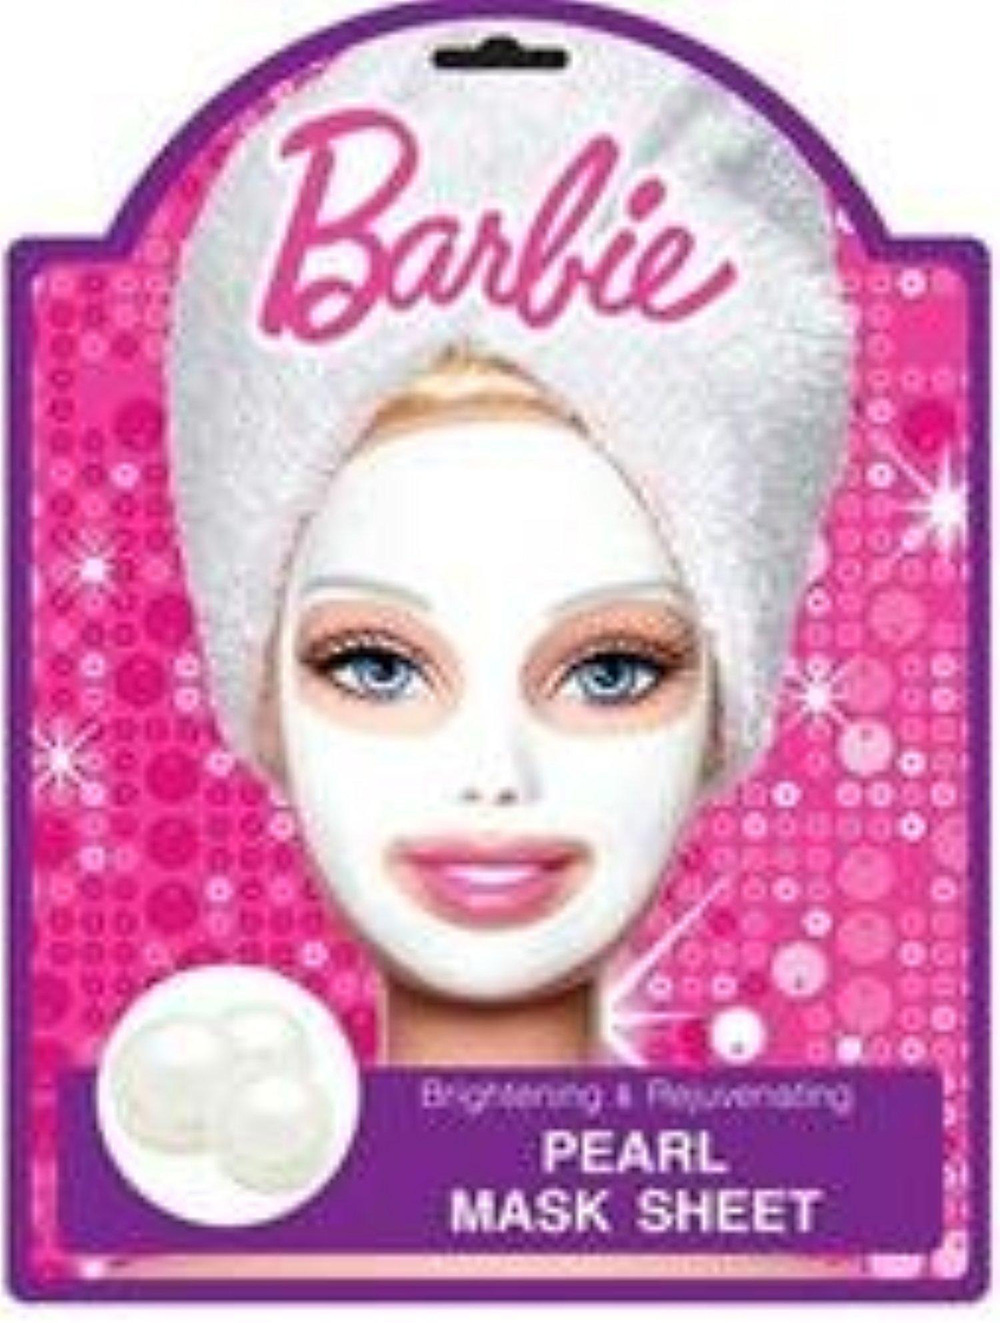 Barbie Pearl Mask Sheet